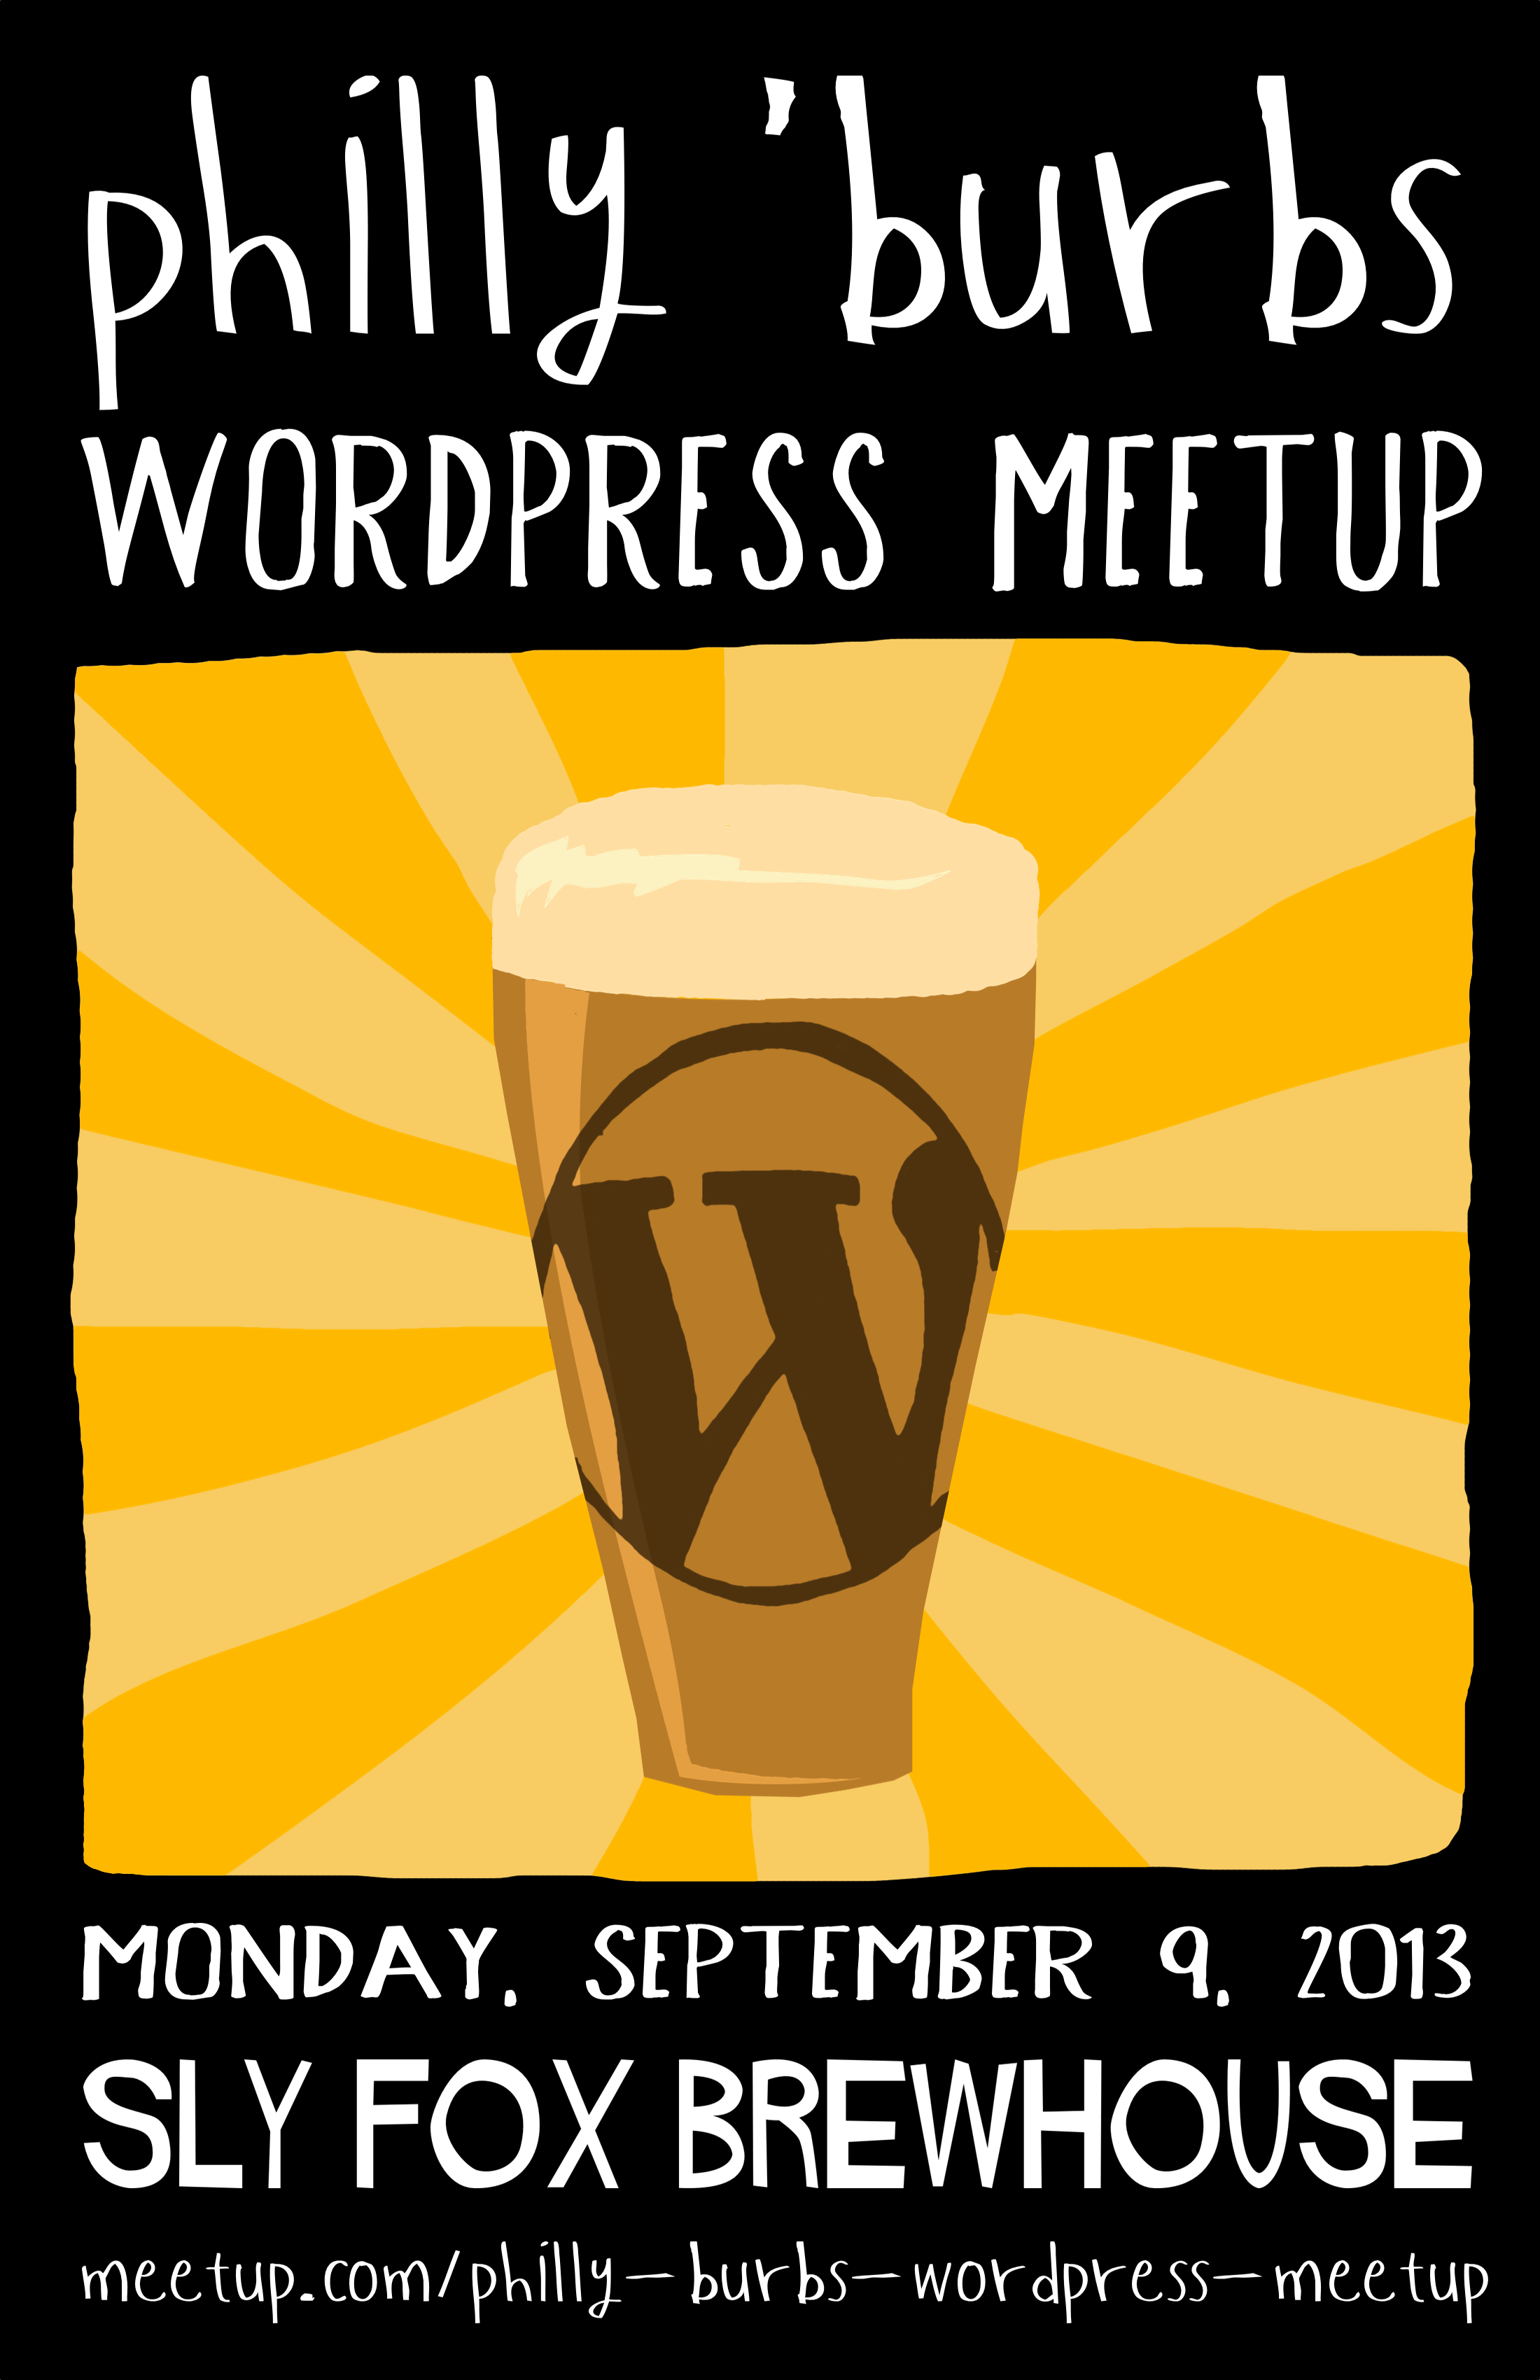 Philly 'burbs WordPress meetup, Monday, September 9, 2013, Sly Fox Brewhouse, meetup.com/philly-burbs-wordpress-meetup